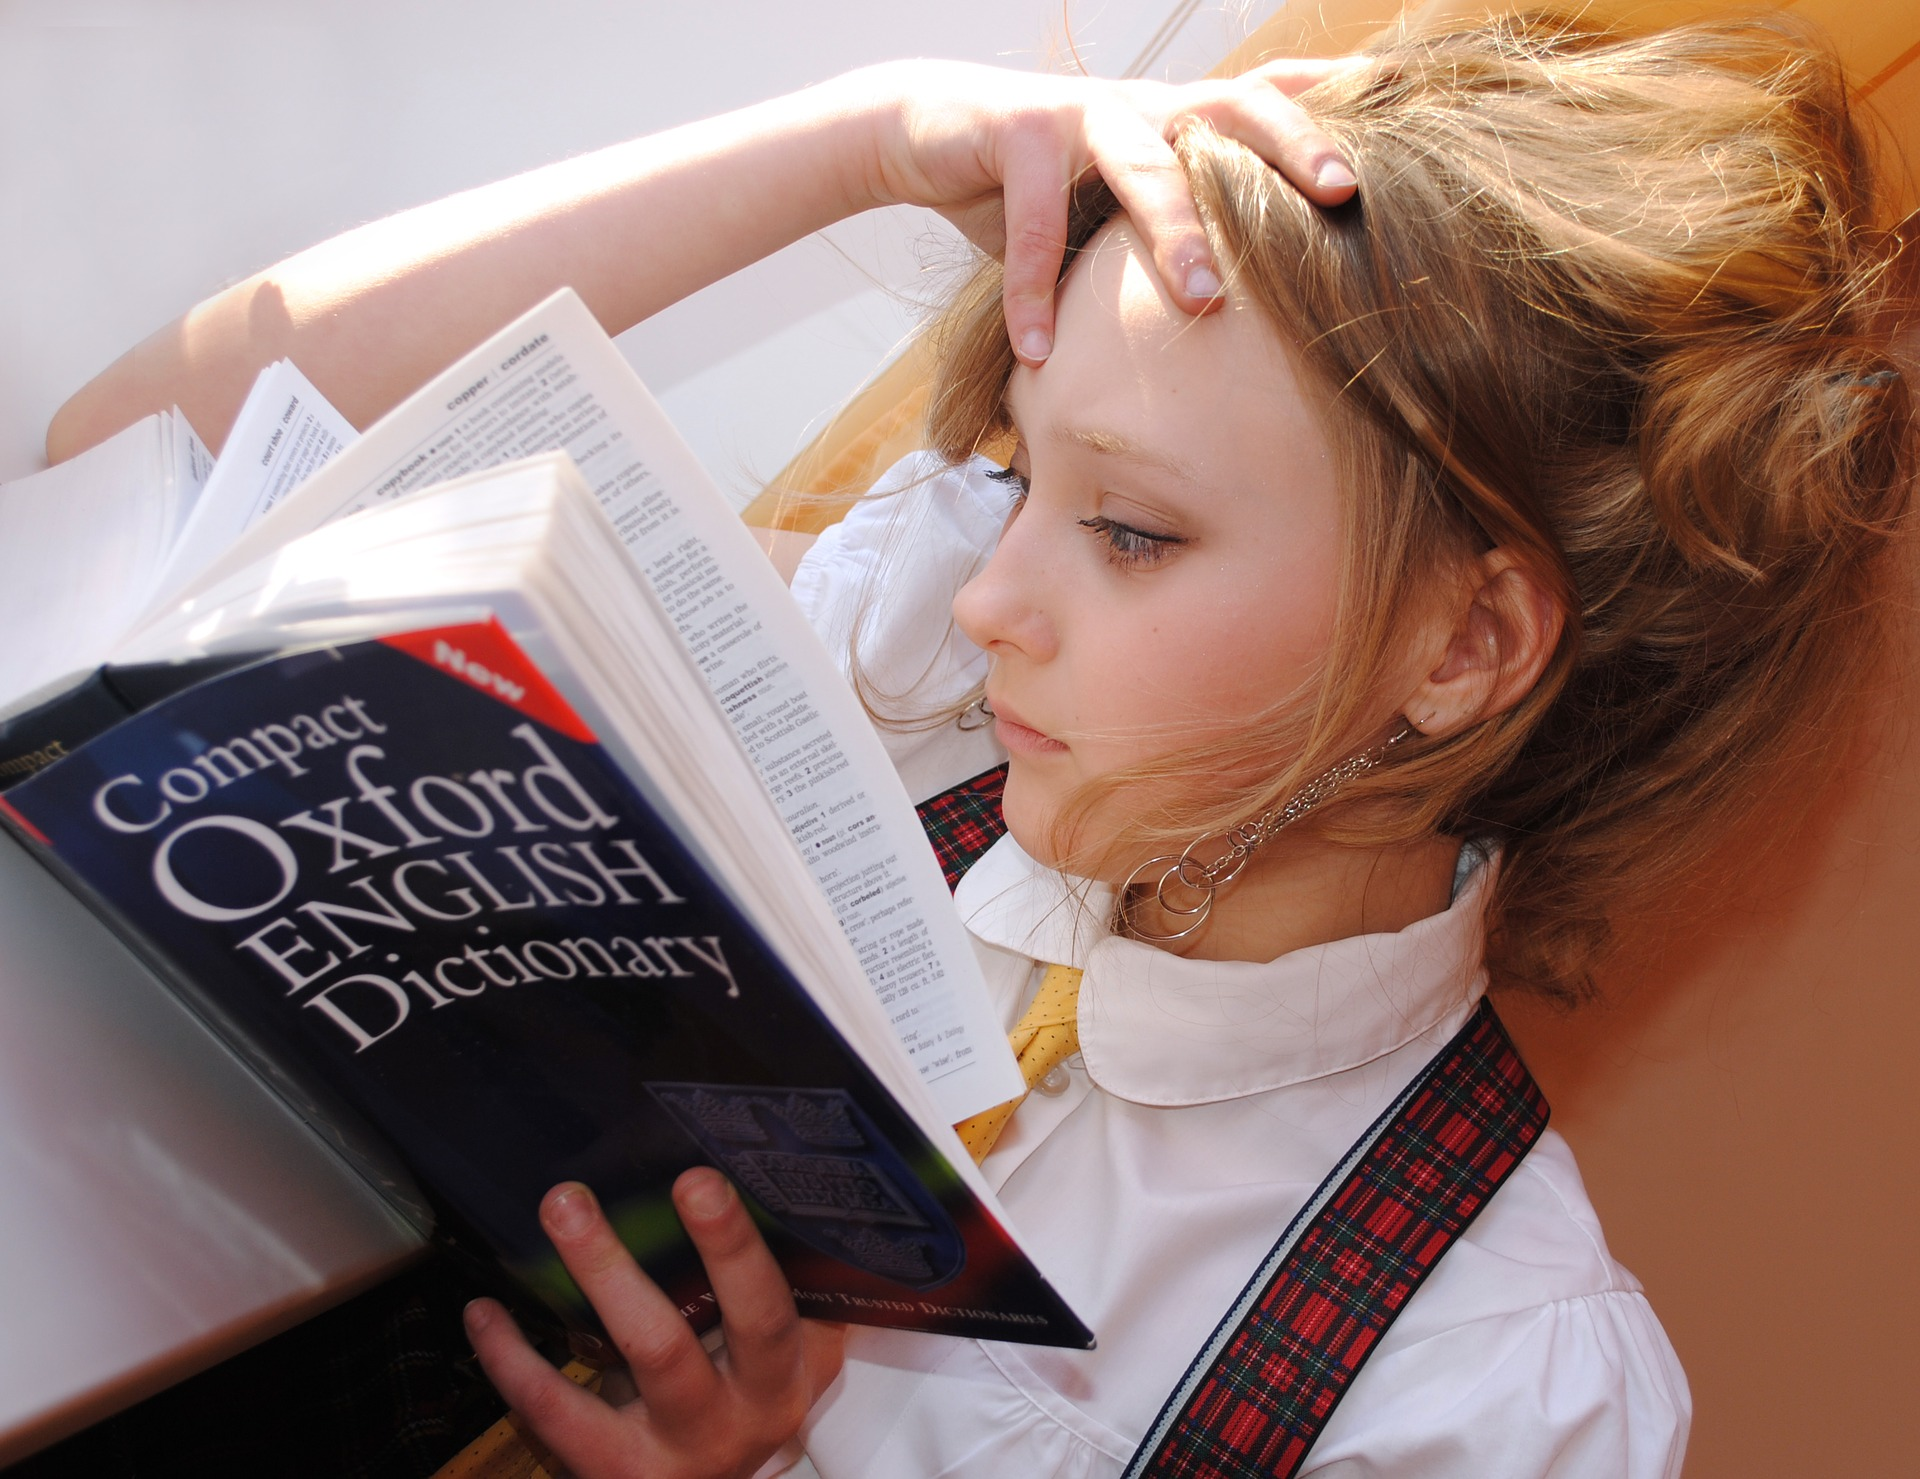 Girl looking in dictionary